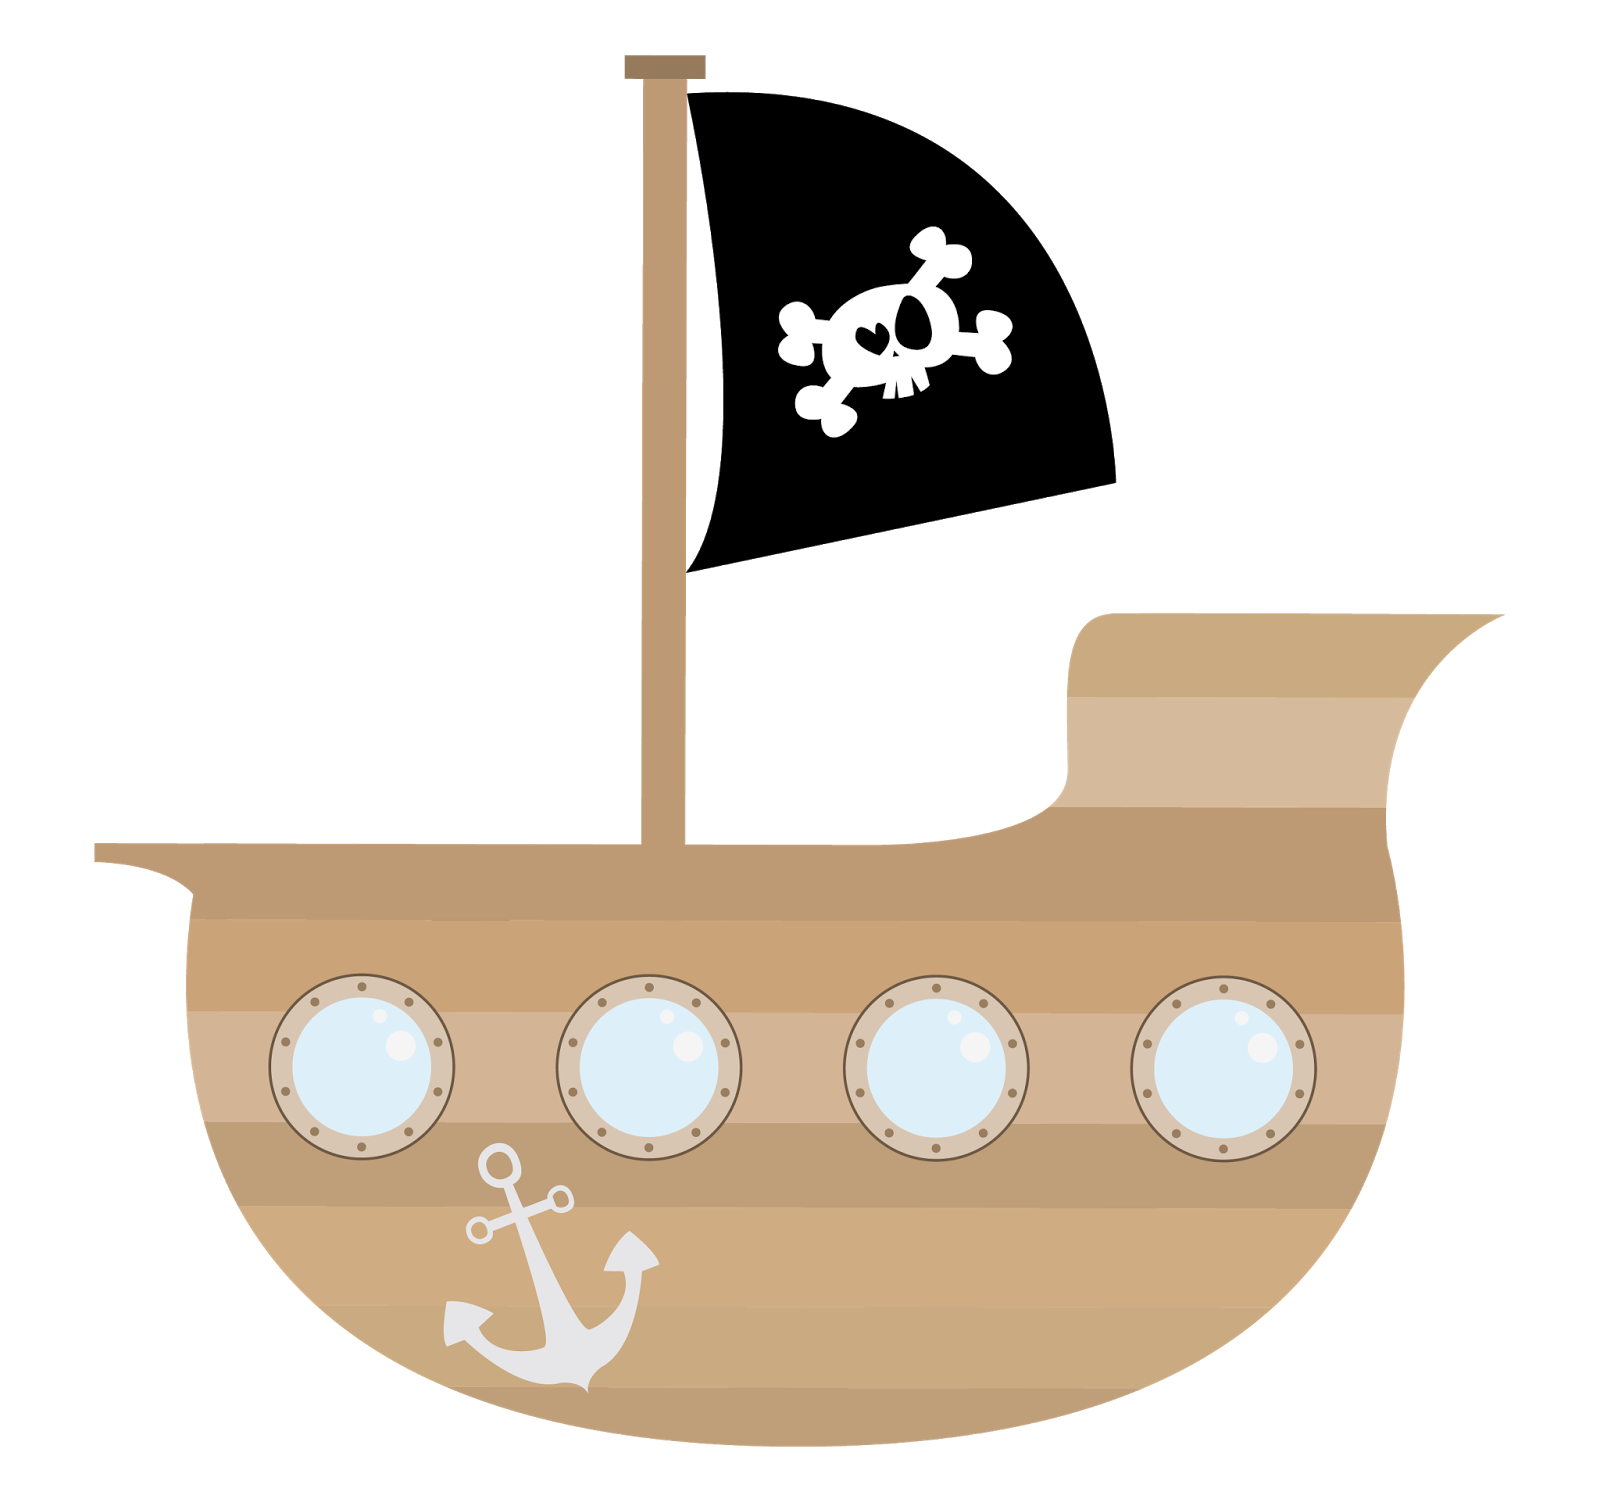 Clipart boat simple. Pirate ship kid story